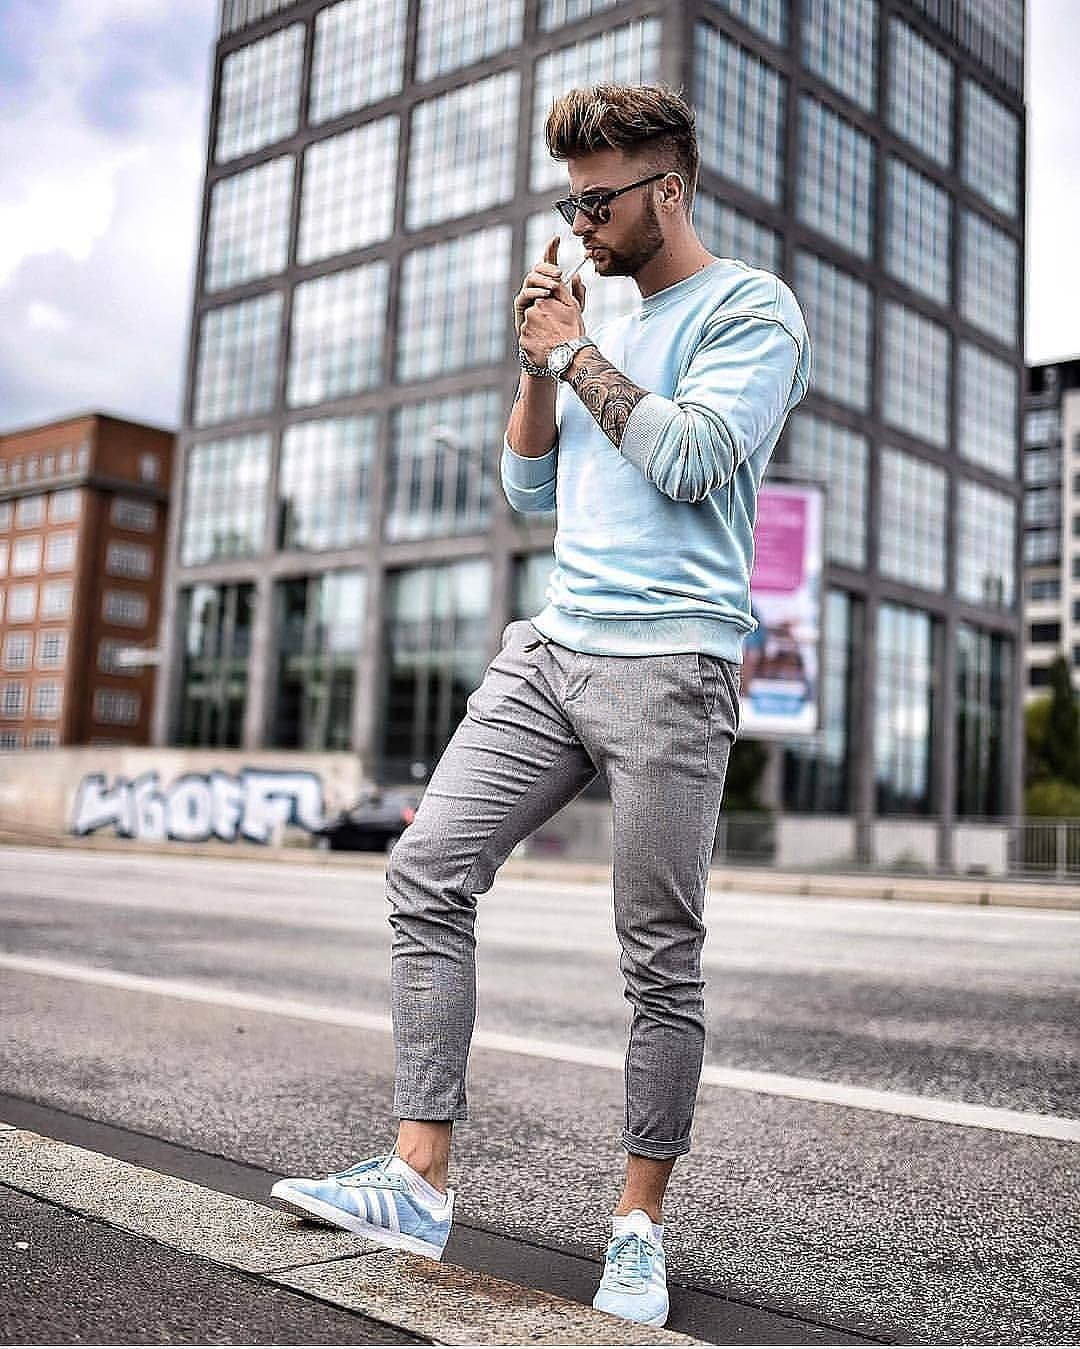 streetstylmen Welcome to Street style men Like his Style